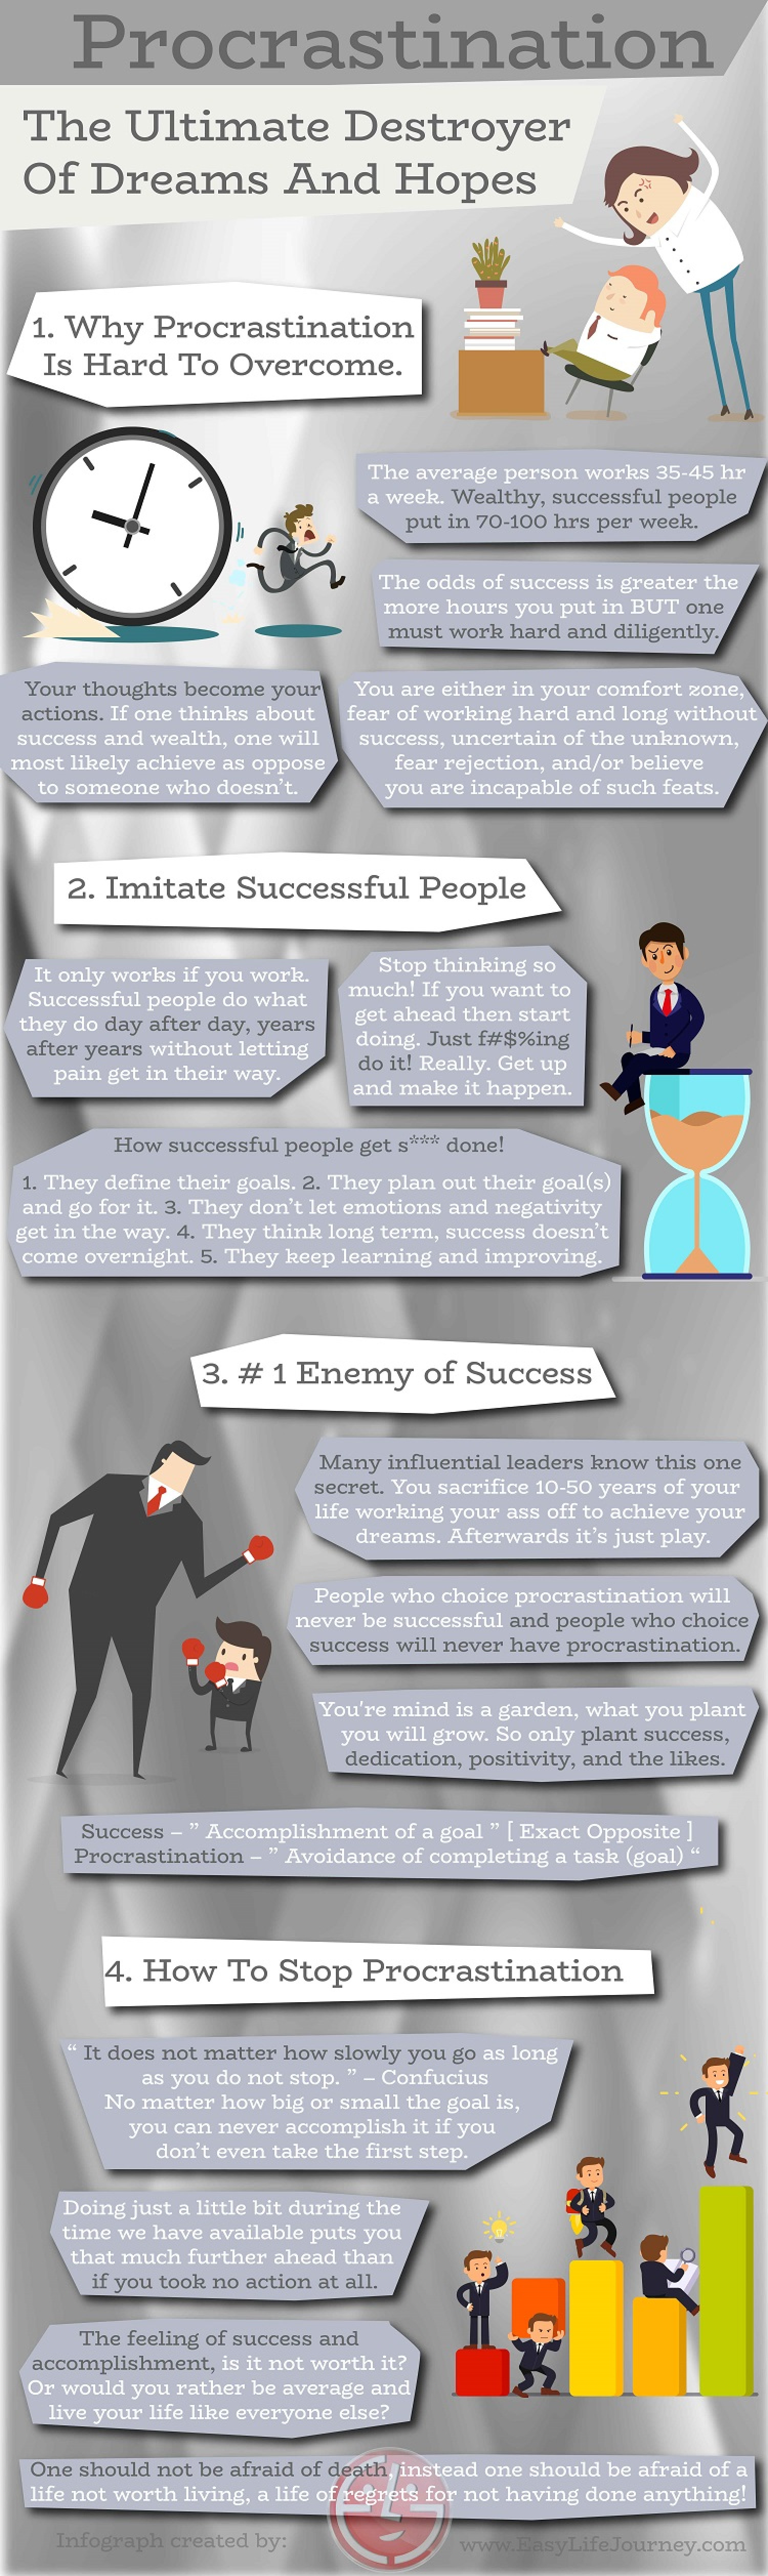 Procrastination The Ultimate Destroyer Of Dreams And Hopes Infographic